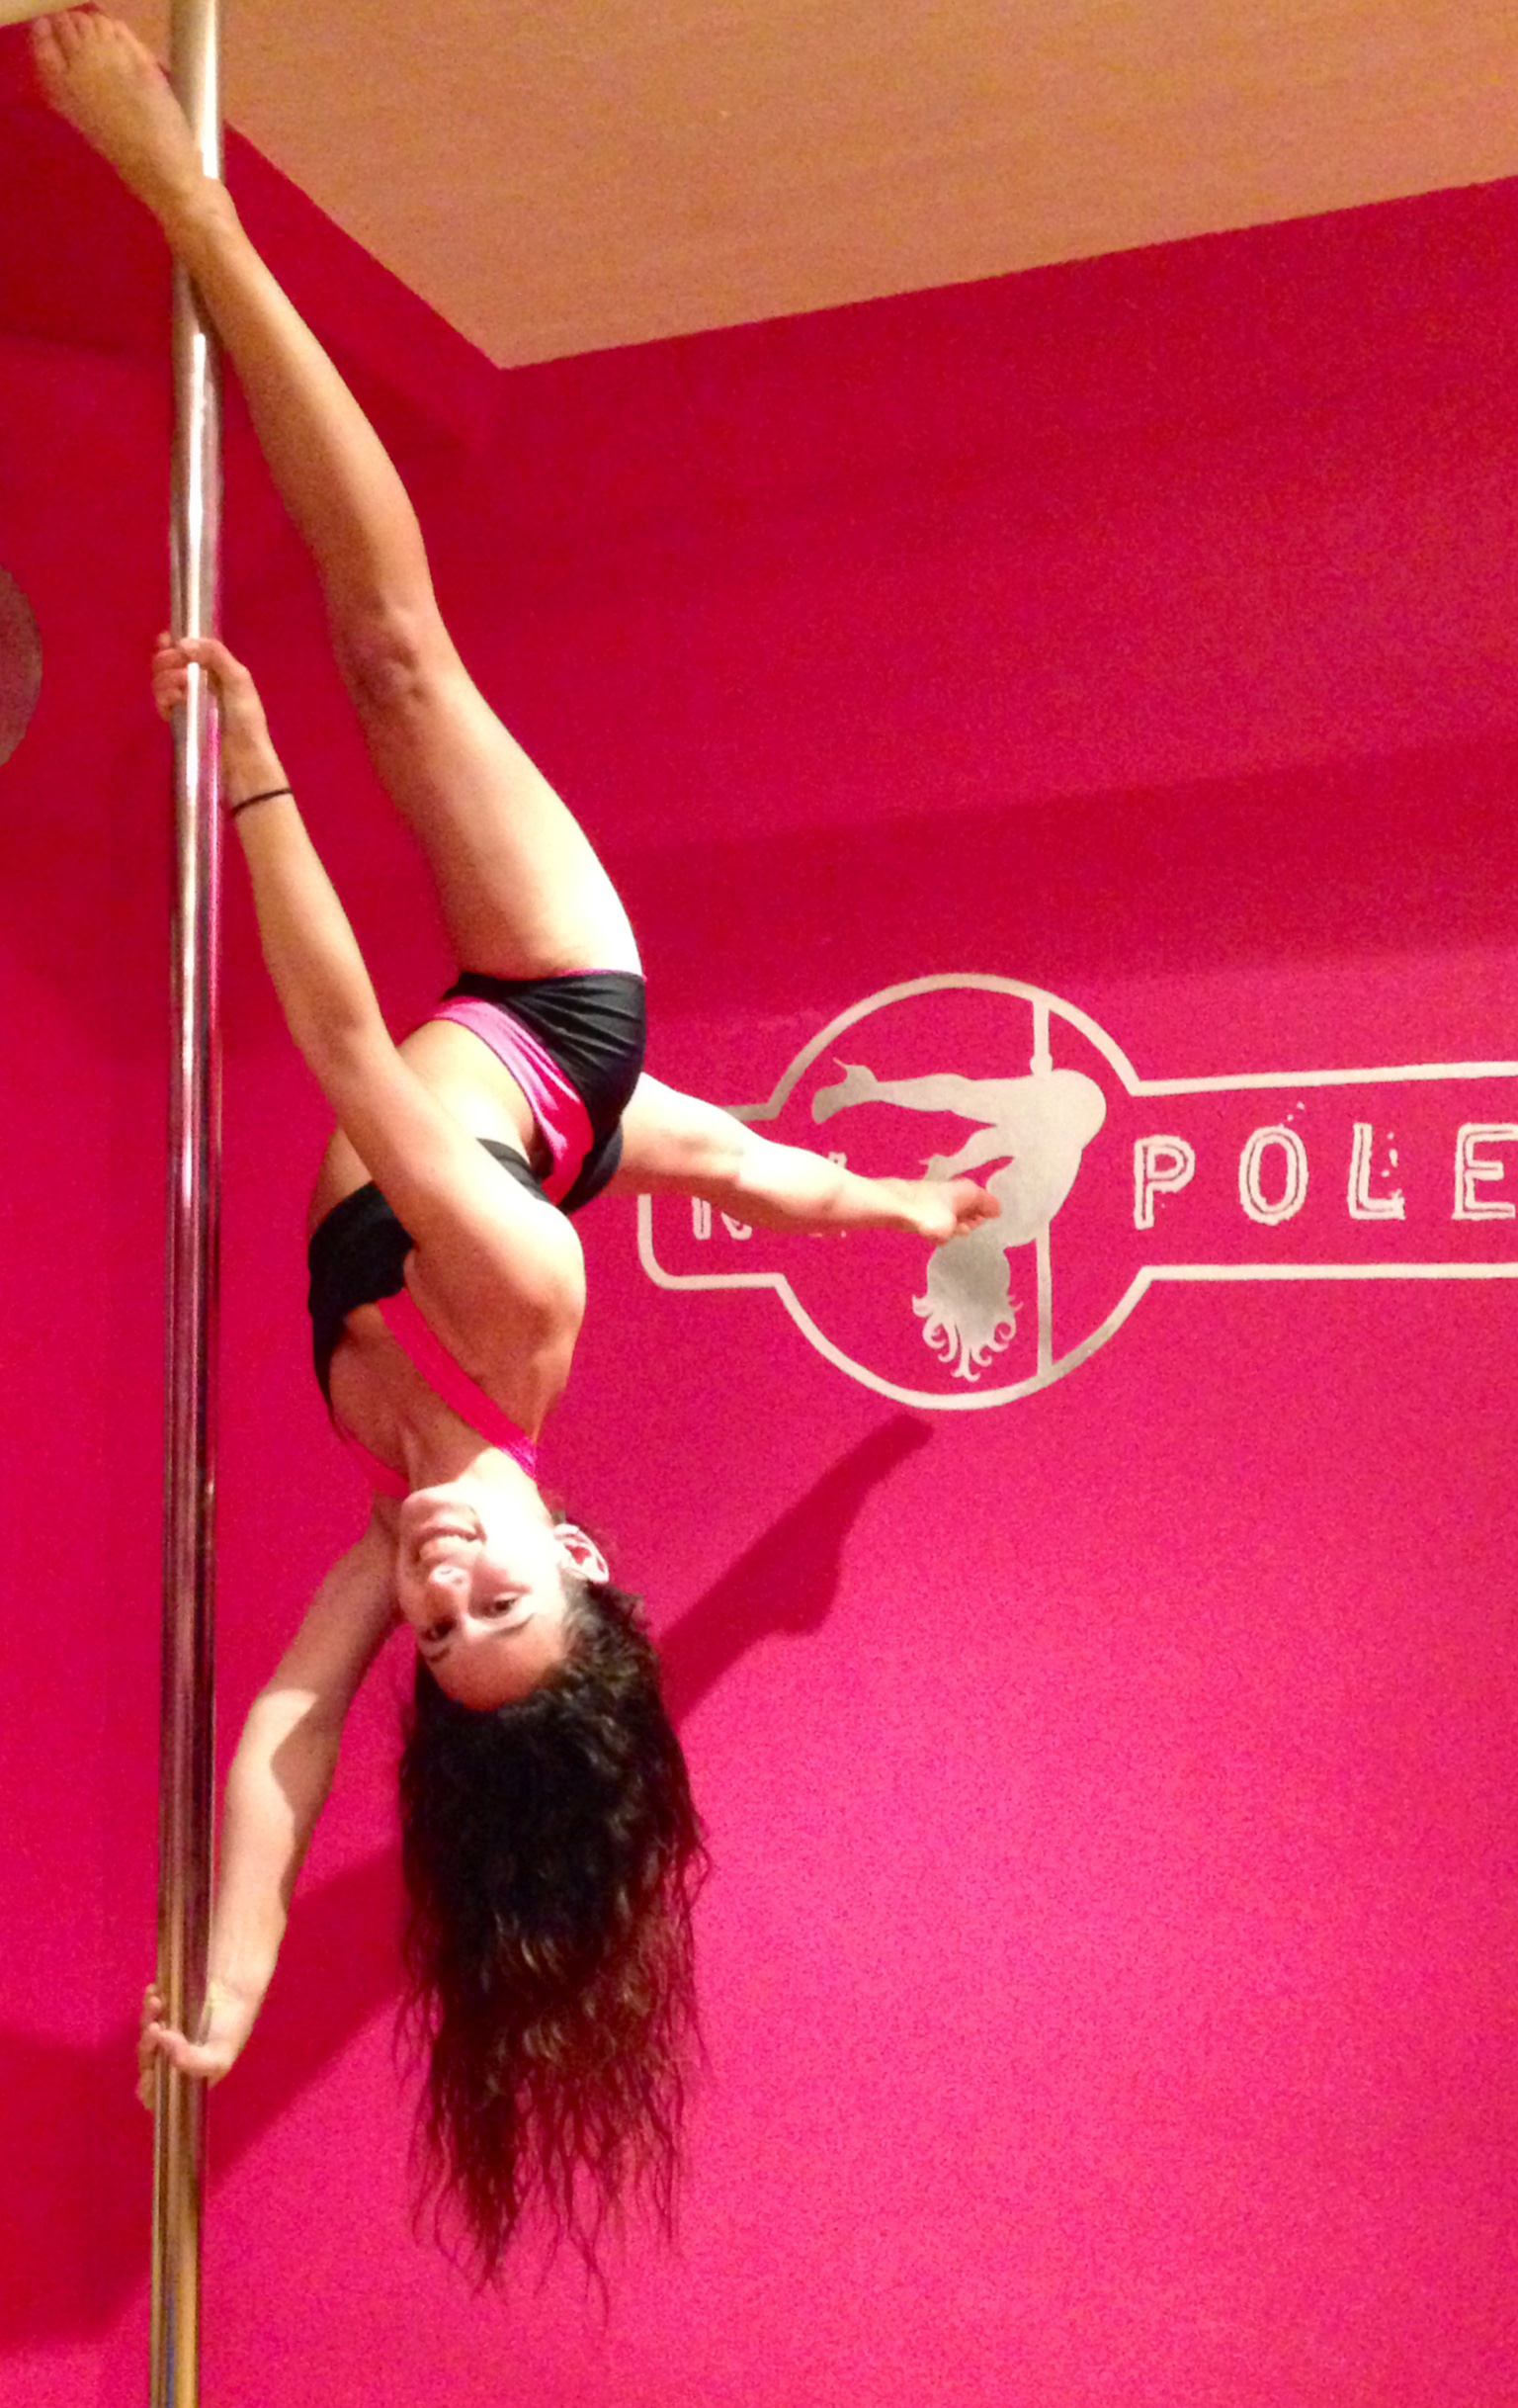 Pole dancing: The new body image revolution